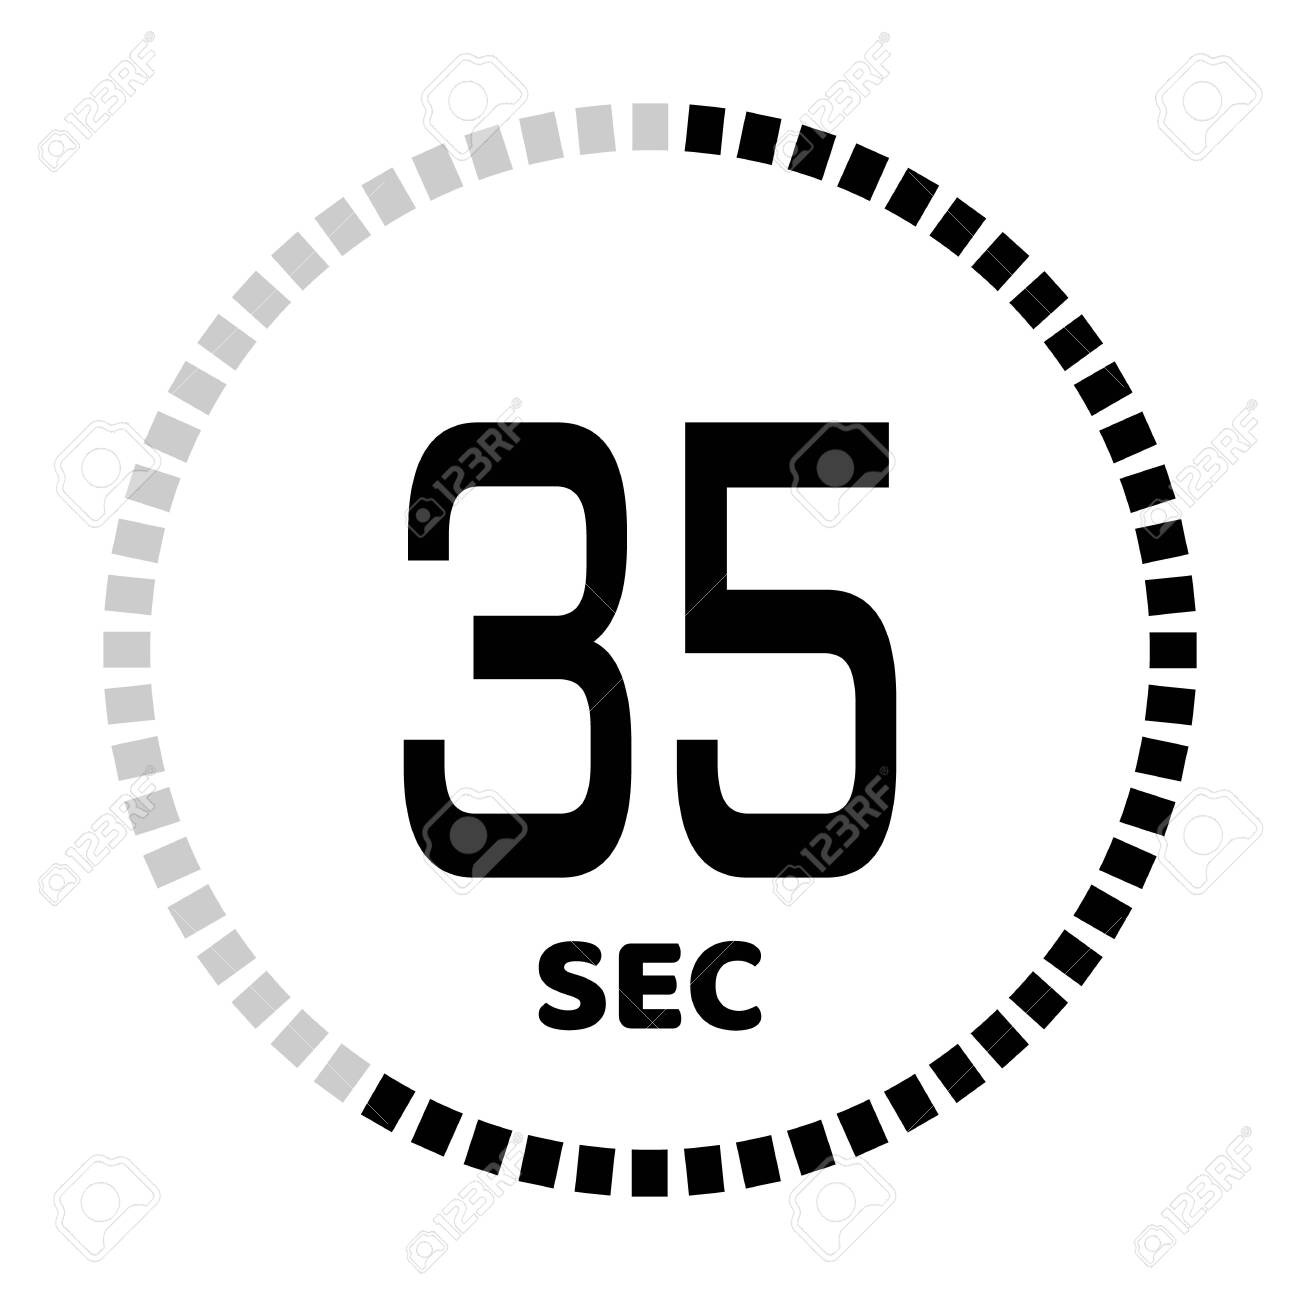 The 35 seconds, stopwatch icon, digital timer. Digital Countdown Timer Vector Icon. Clock and watch, timer. - 127834363